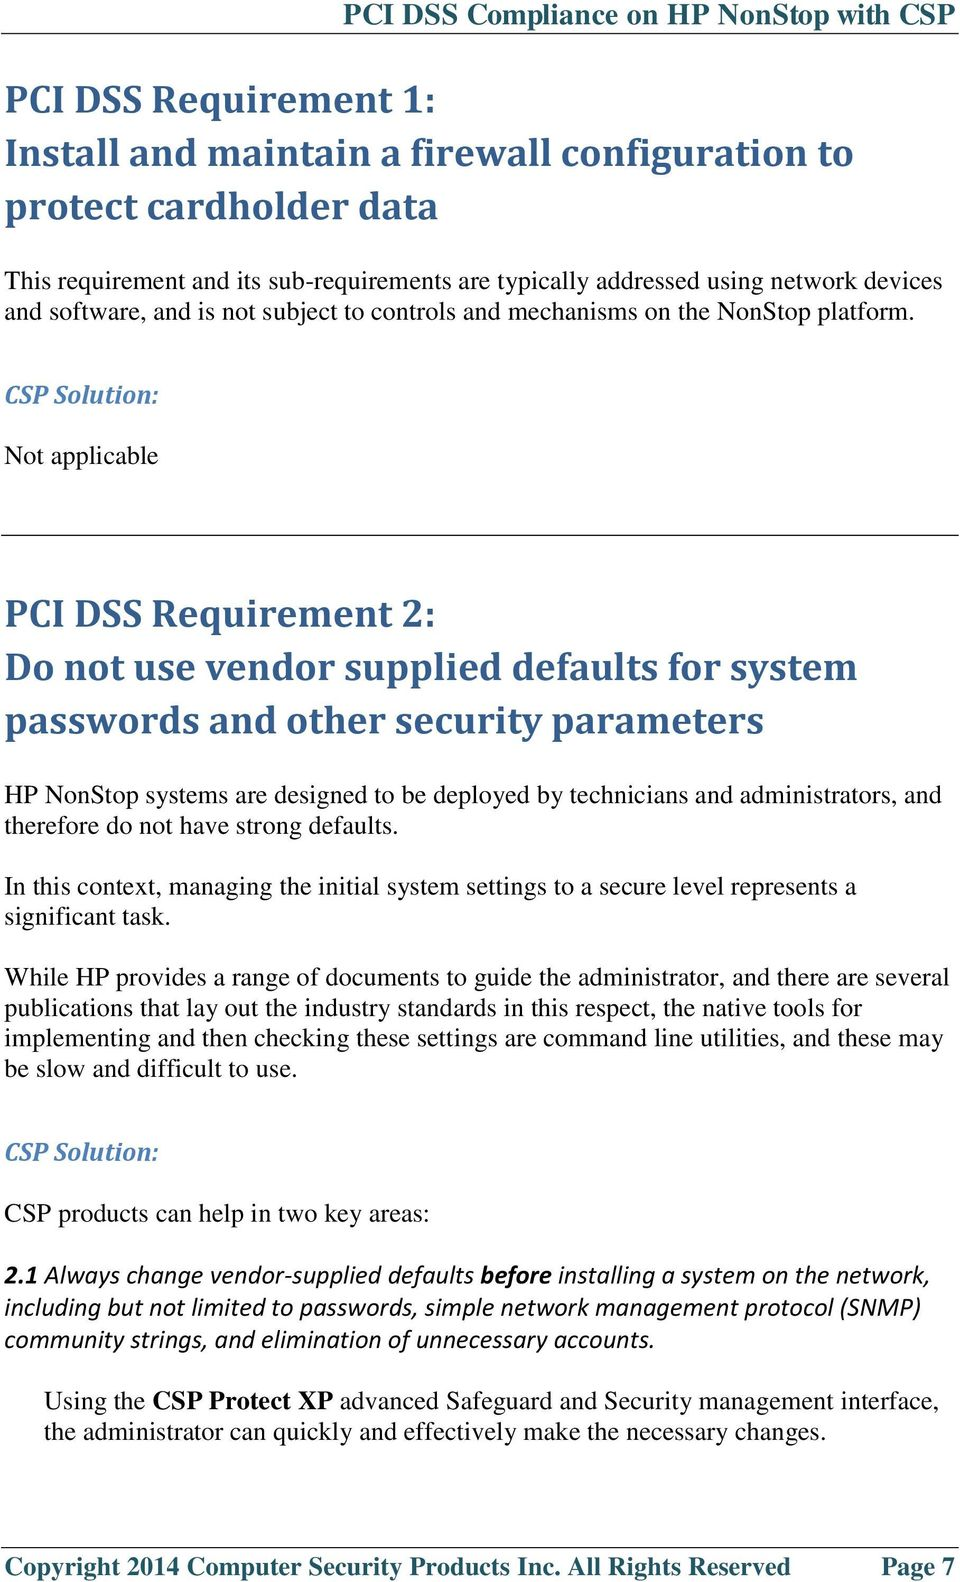 Not applicable PCI DSS Requirement 2: Do not use vendor supplied defaults for system passwords and other security parameters HP NonStop systems are designed to be deployed by technicians and